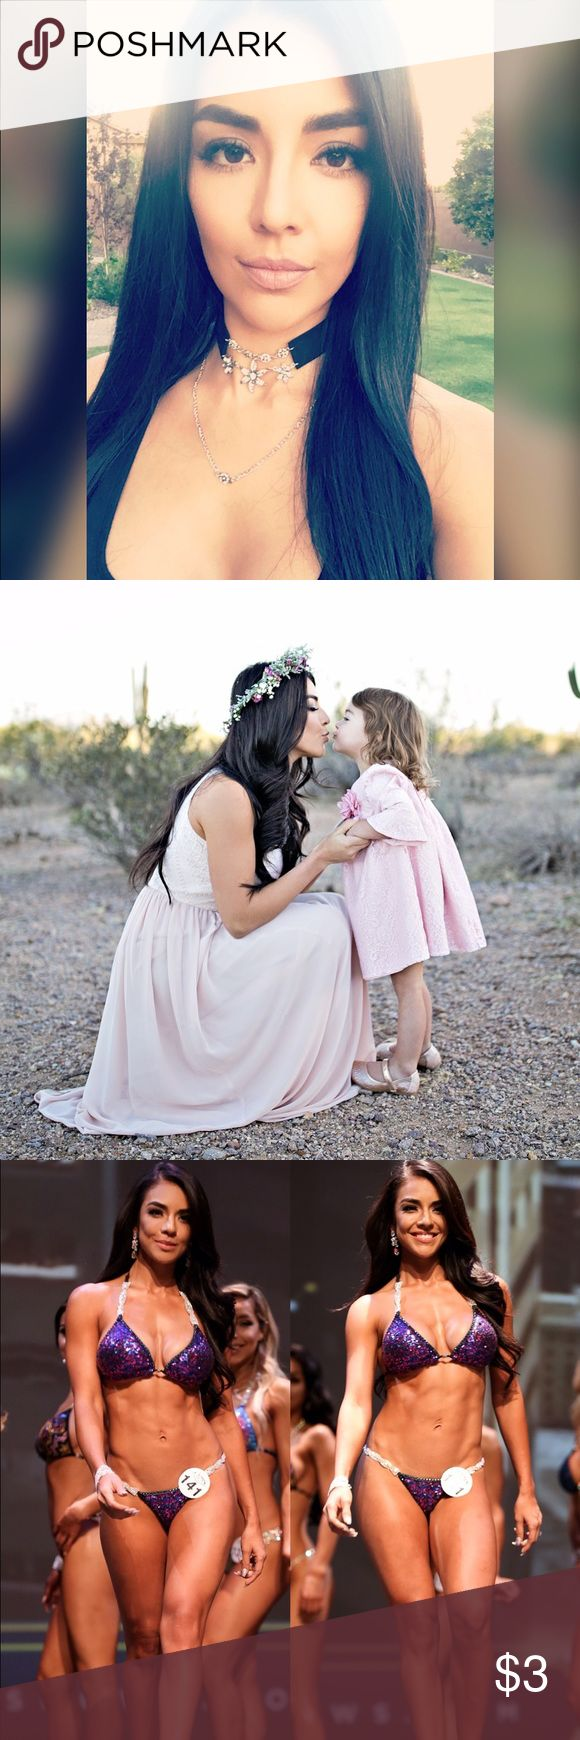 Meet your posher!! Hello! My name is Karla, I'm from Arizona. I have a 2 year old, 3 stepsons and a goldendoodle ☺ I'm a full time mom, own a promo model agency, like to stay fit and compete, I work for a few boutiques and love to shop. Most of the stuff I post is either new or worn once. Brands I love are lululemon, Gymshark, Nike, Urban Outfitters, Christian Louboutin, Givenchy, and many more 🙈 I love Posh,  it makes my life easier because I really don't like going shopping with a toddler…